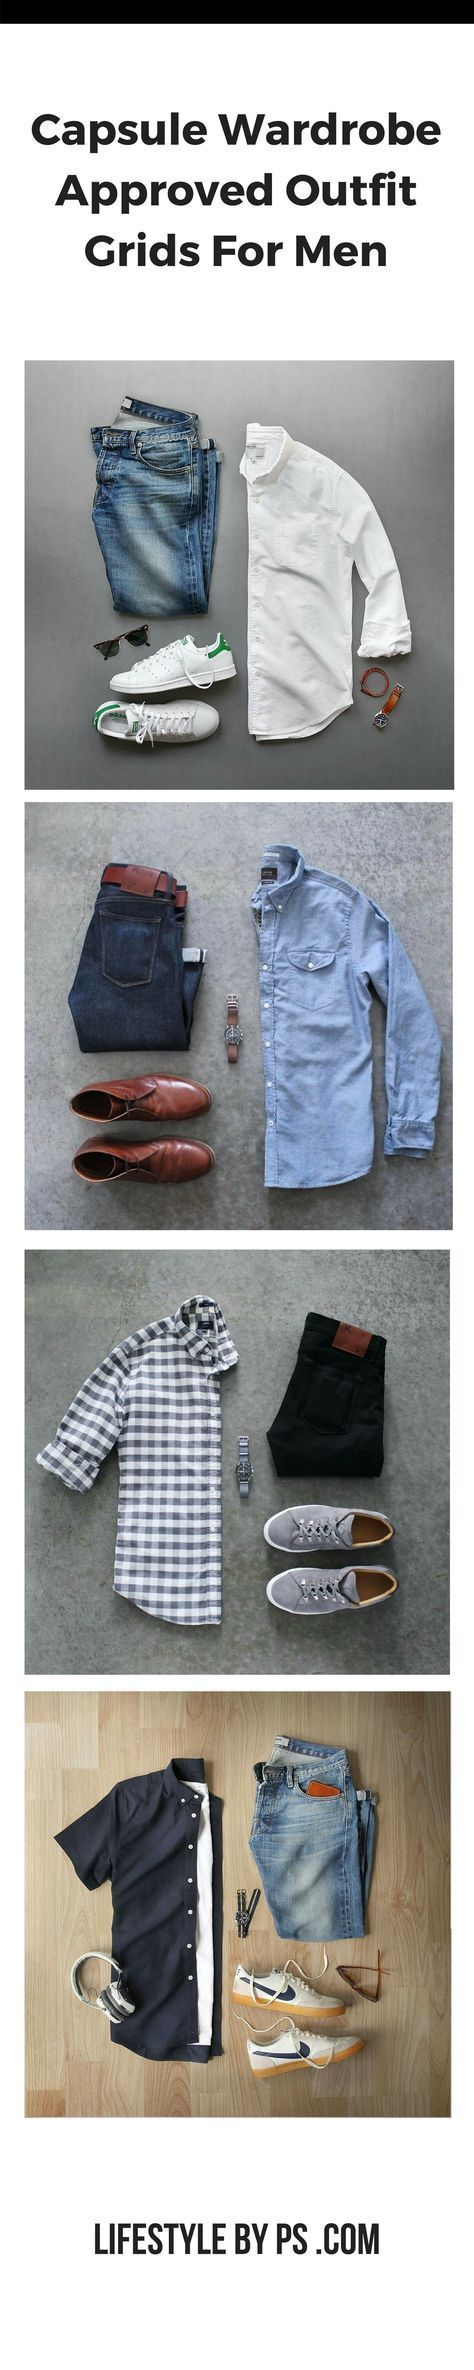 8 Capsule Wardrobe Approved Outfit Grid For Men